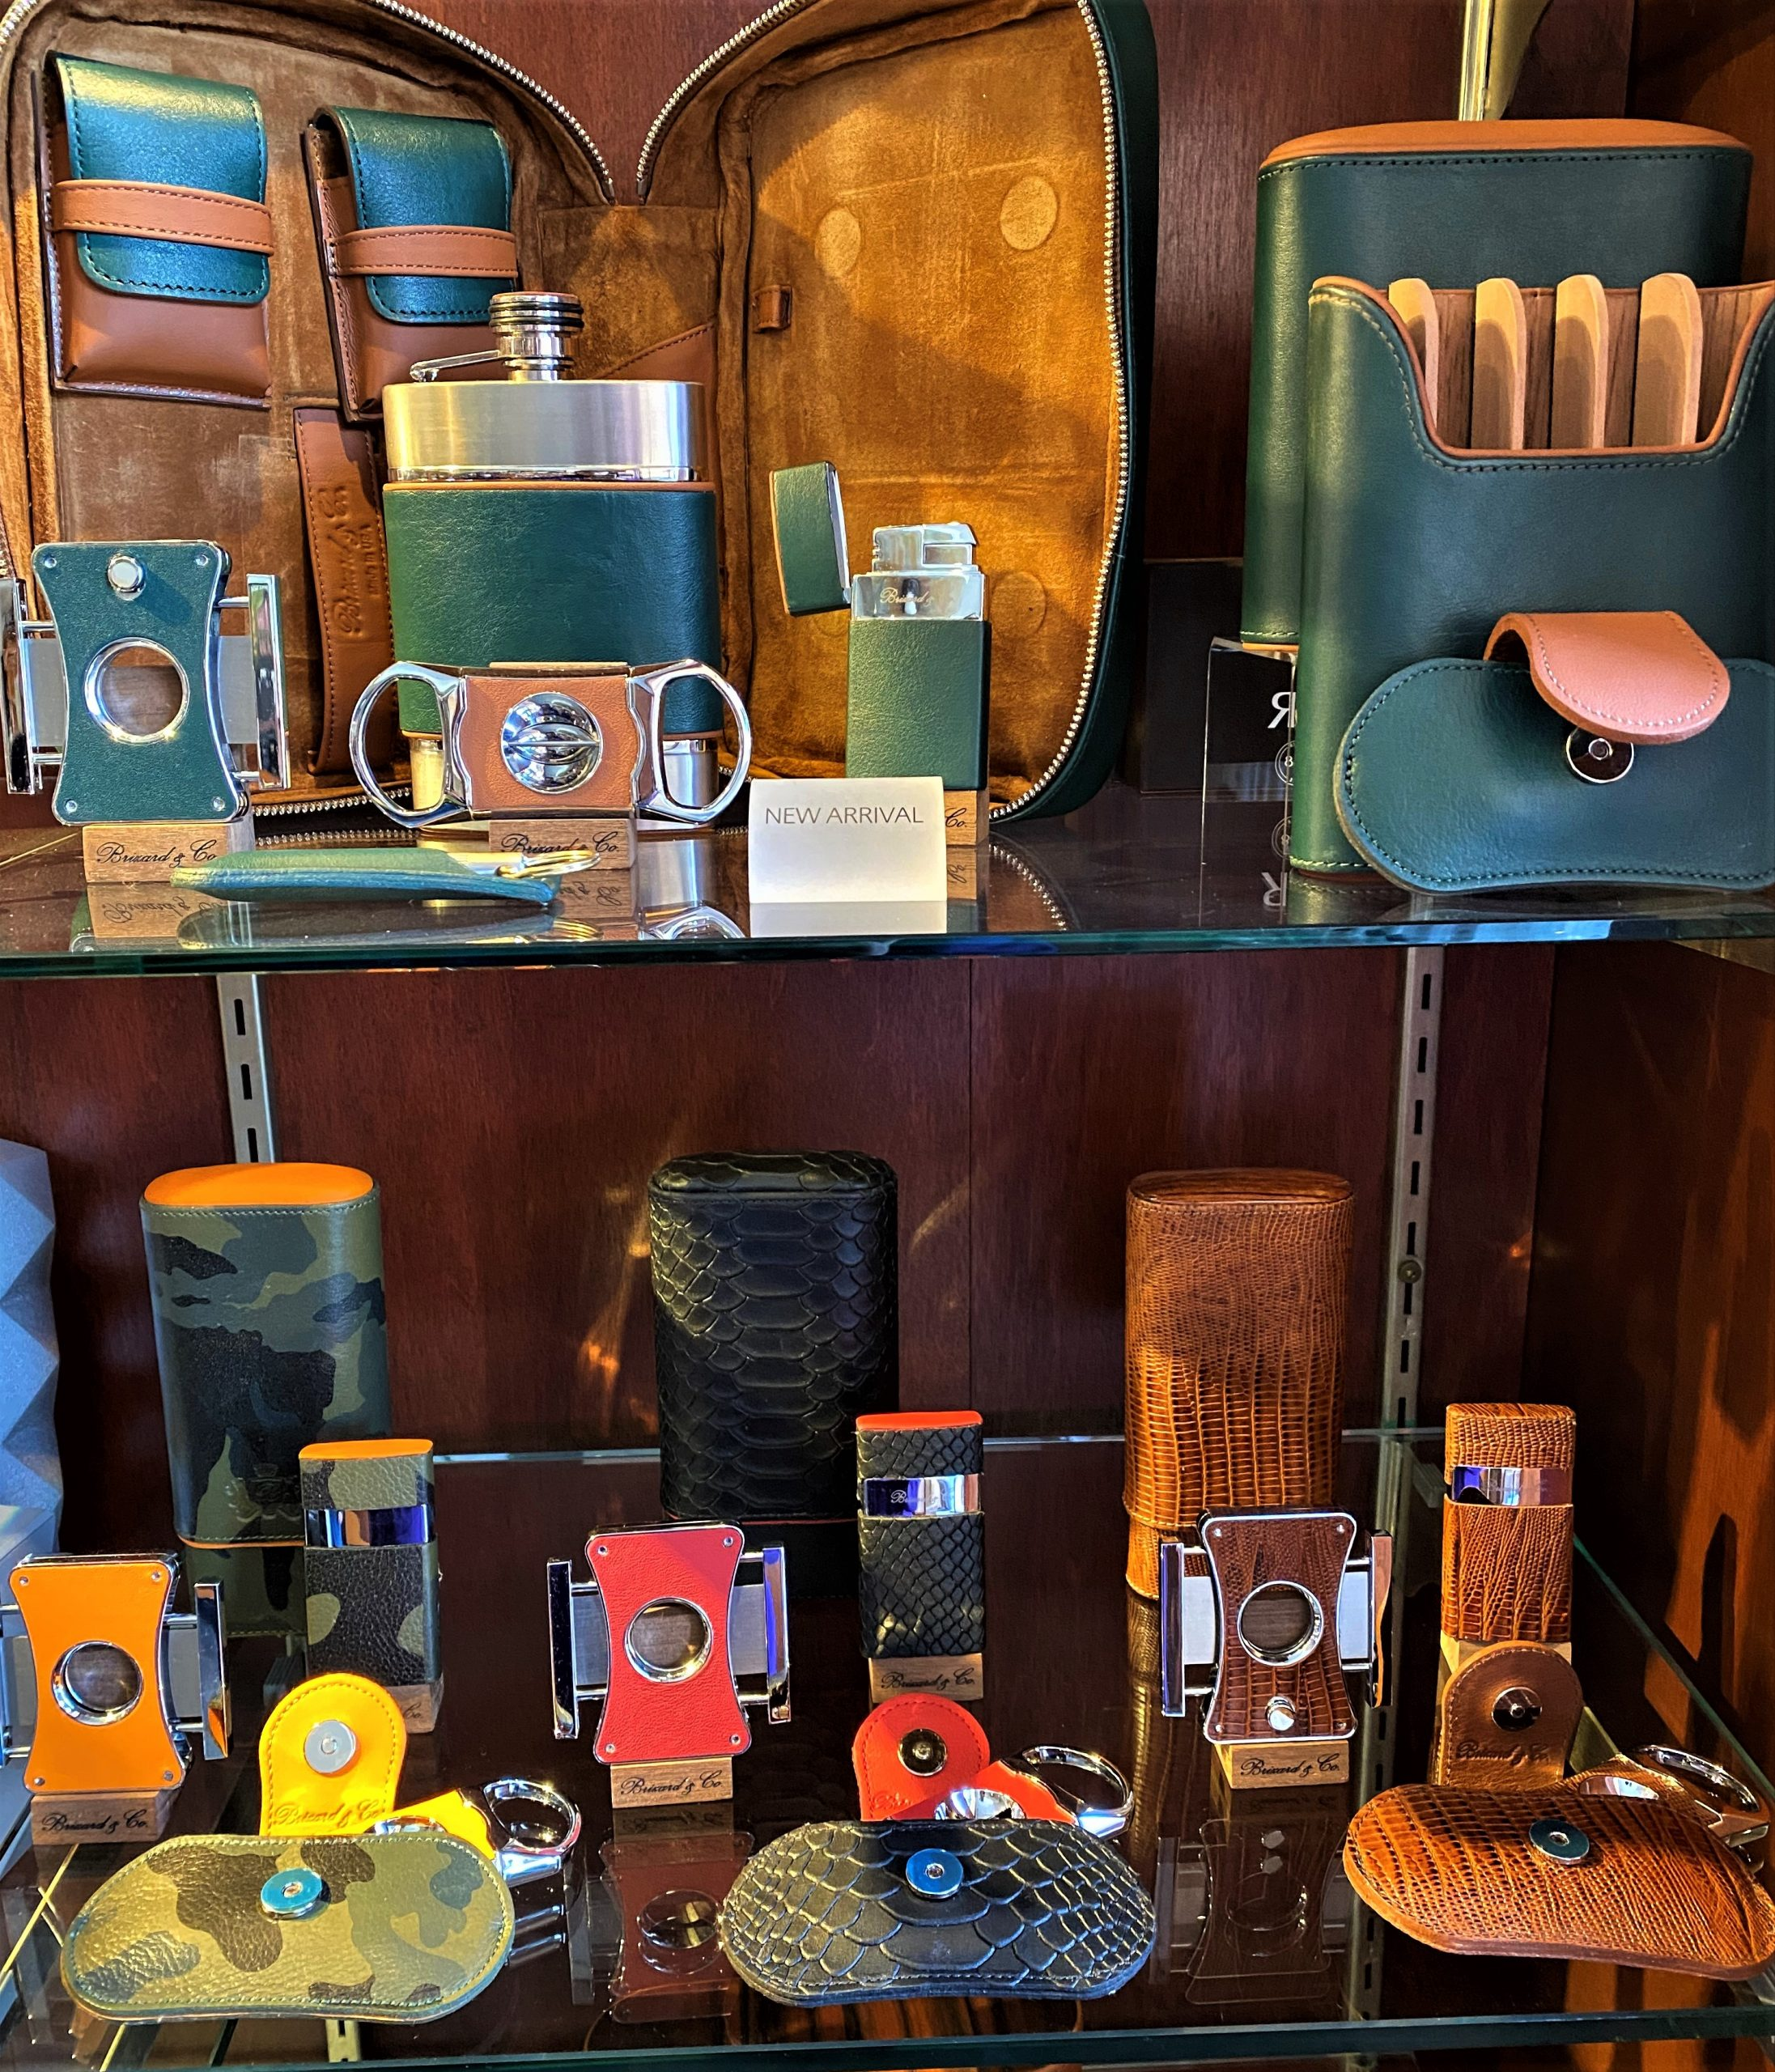 cigar cutters, torch lighters and cigar cases